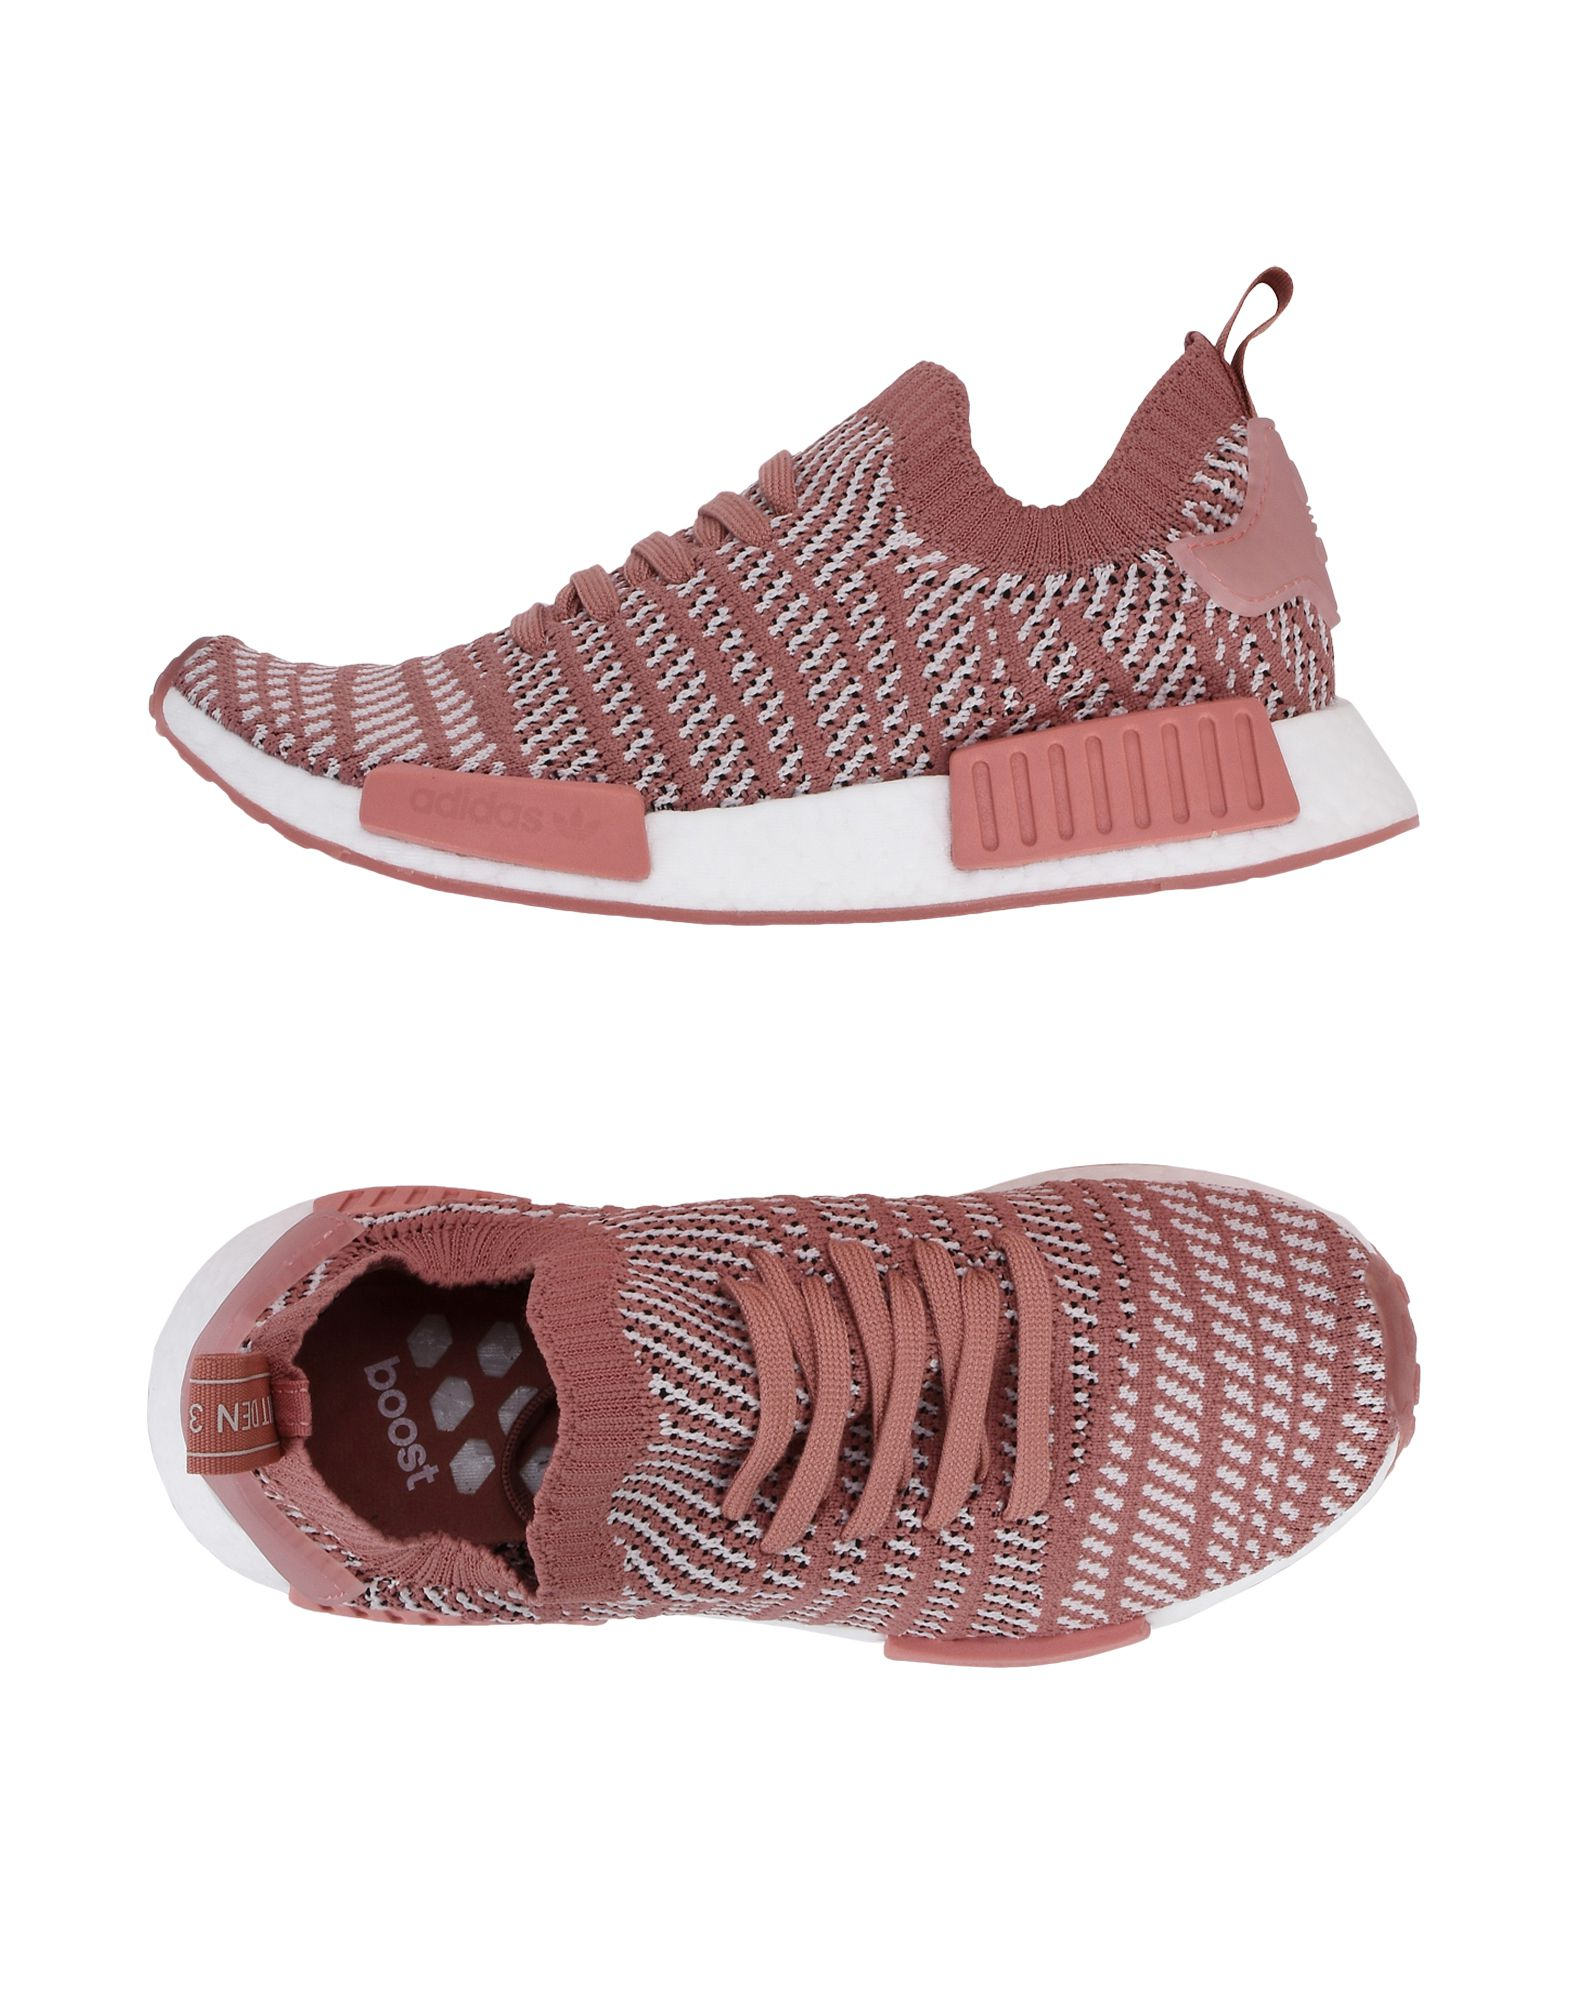 Adidas Originals Nmd_R1 Stlt Pk W - Sneakers - online Women Adidas Originals Sneakers online - on  United Kingdom - 11432094TA 94beec